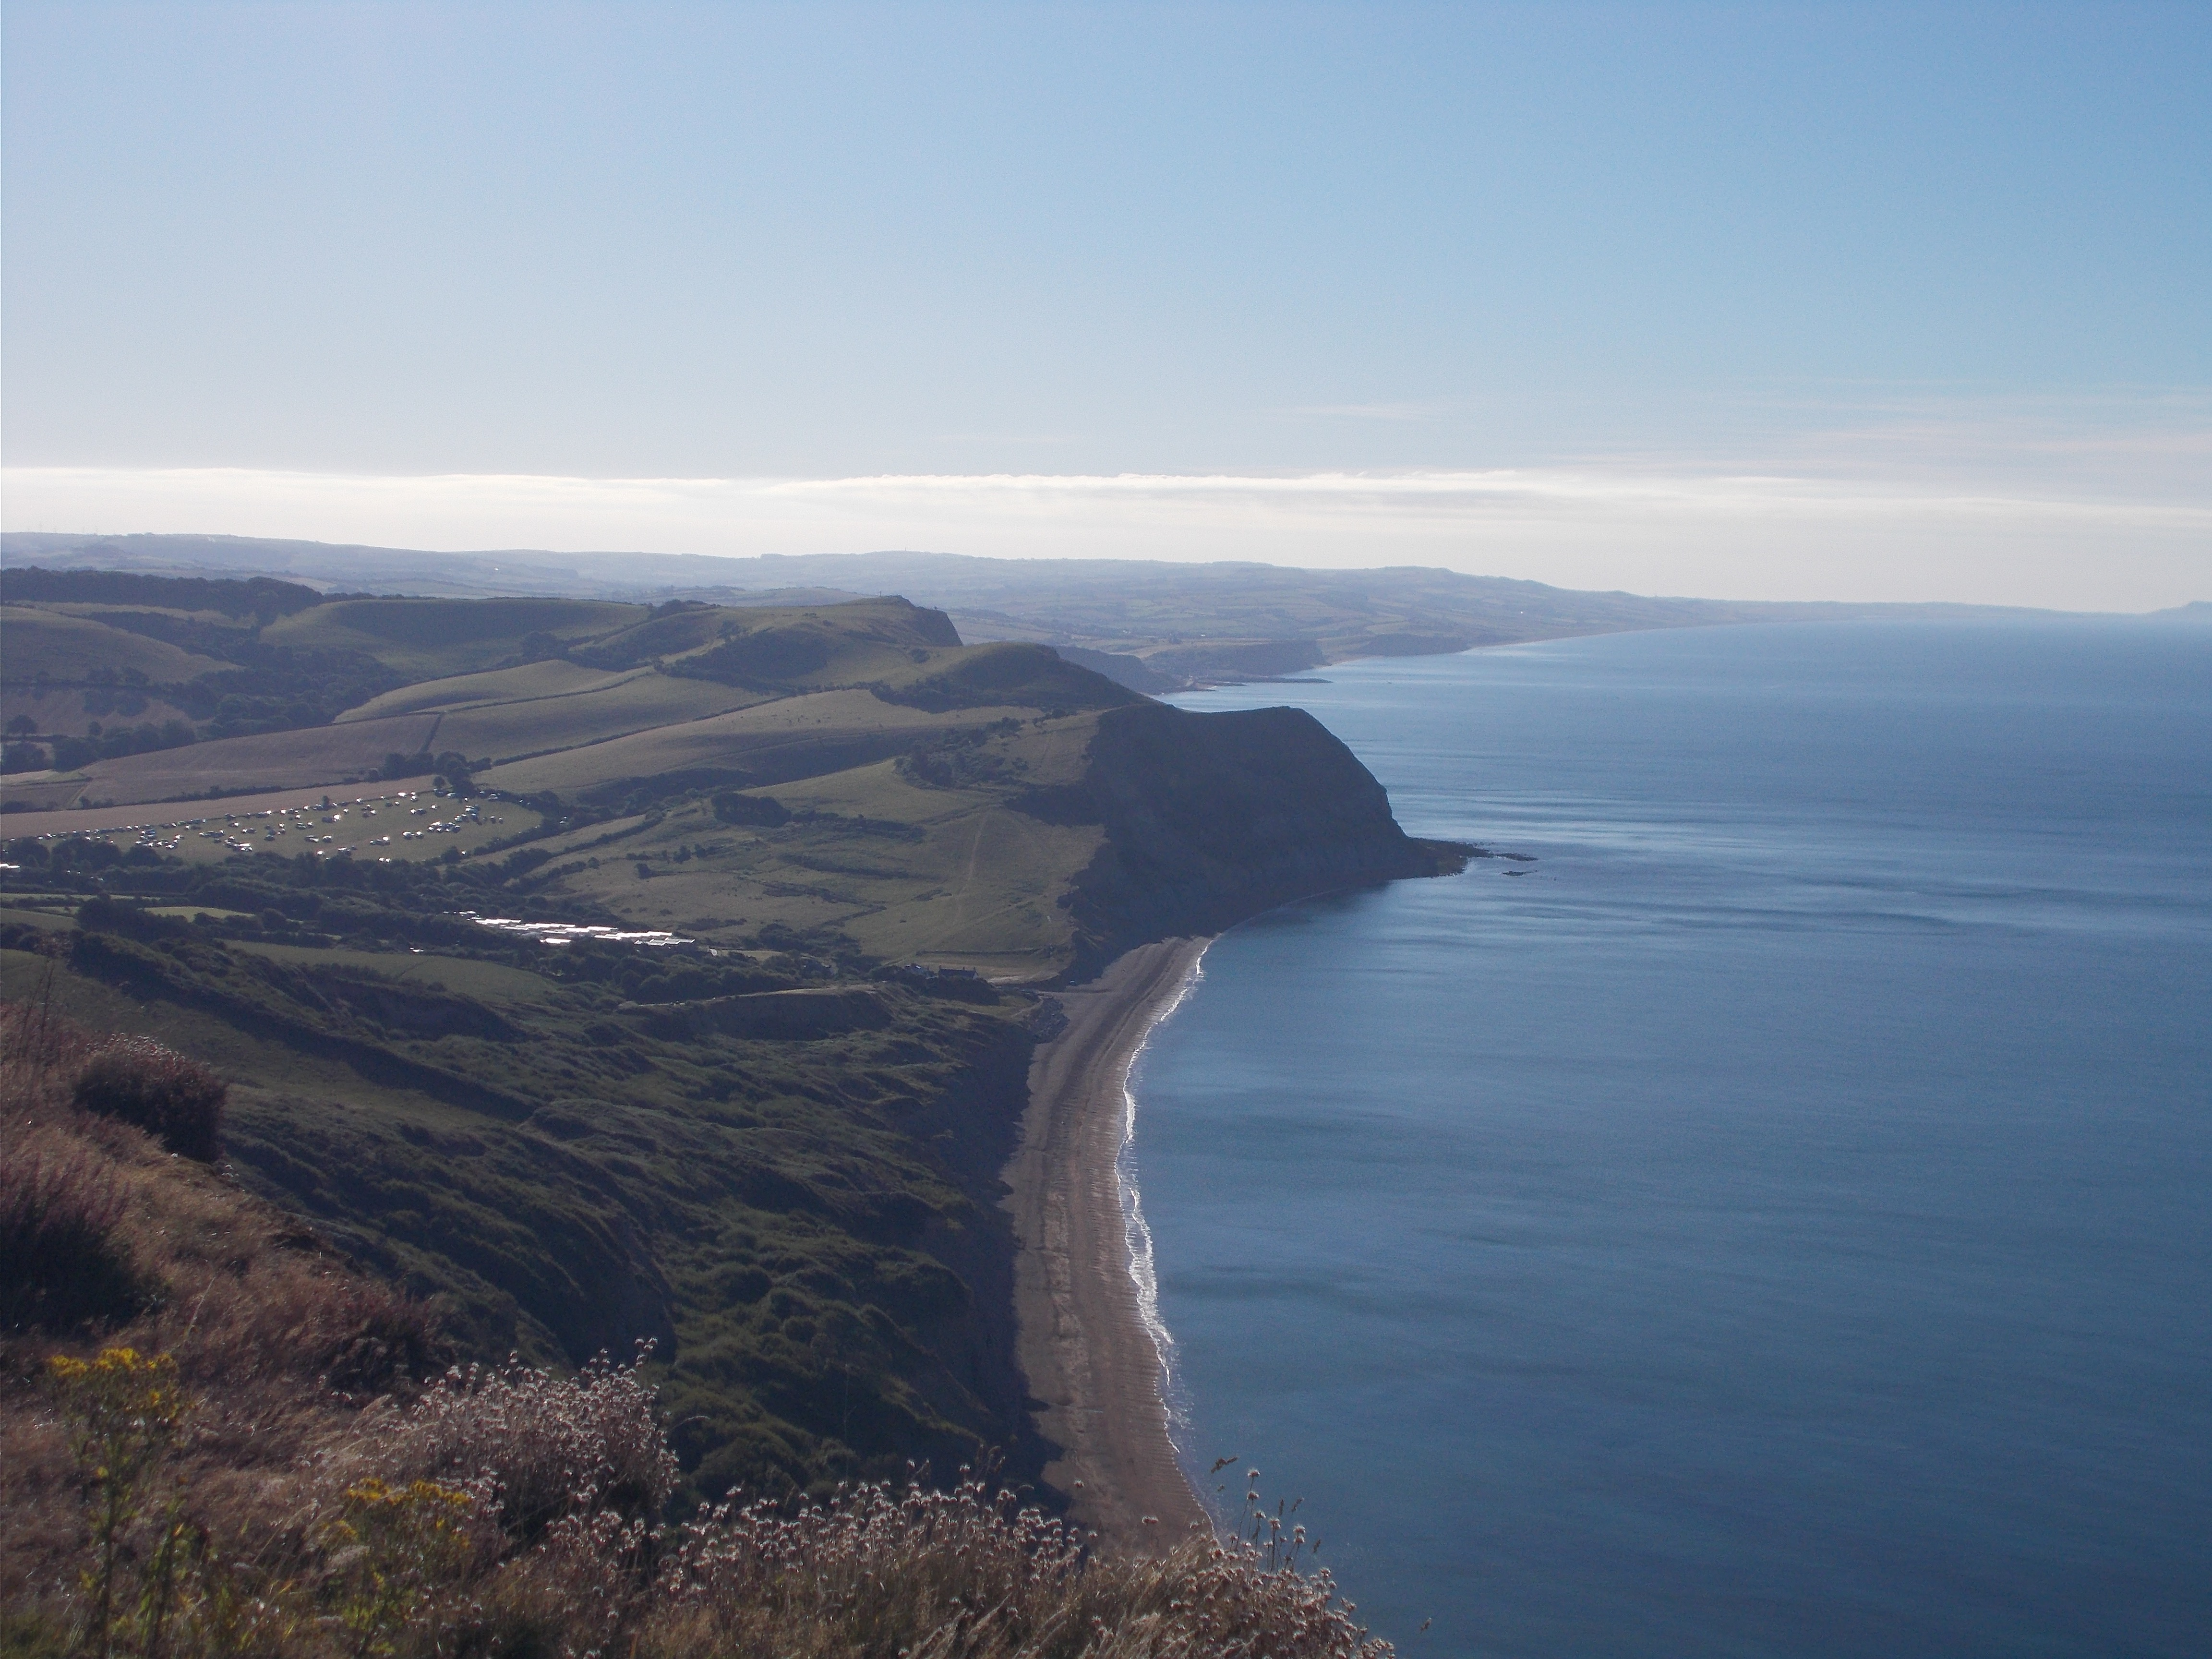 Looking towards West Bay